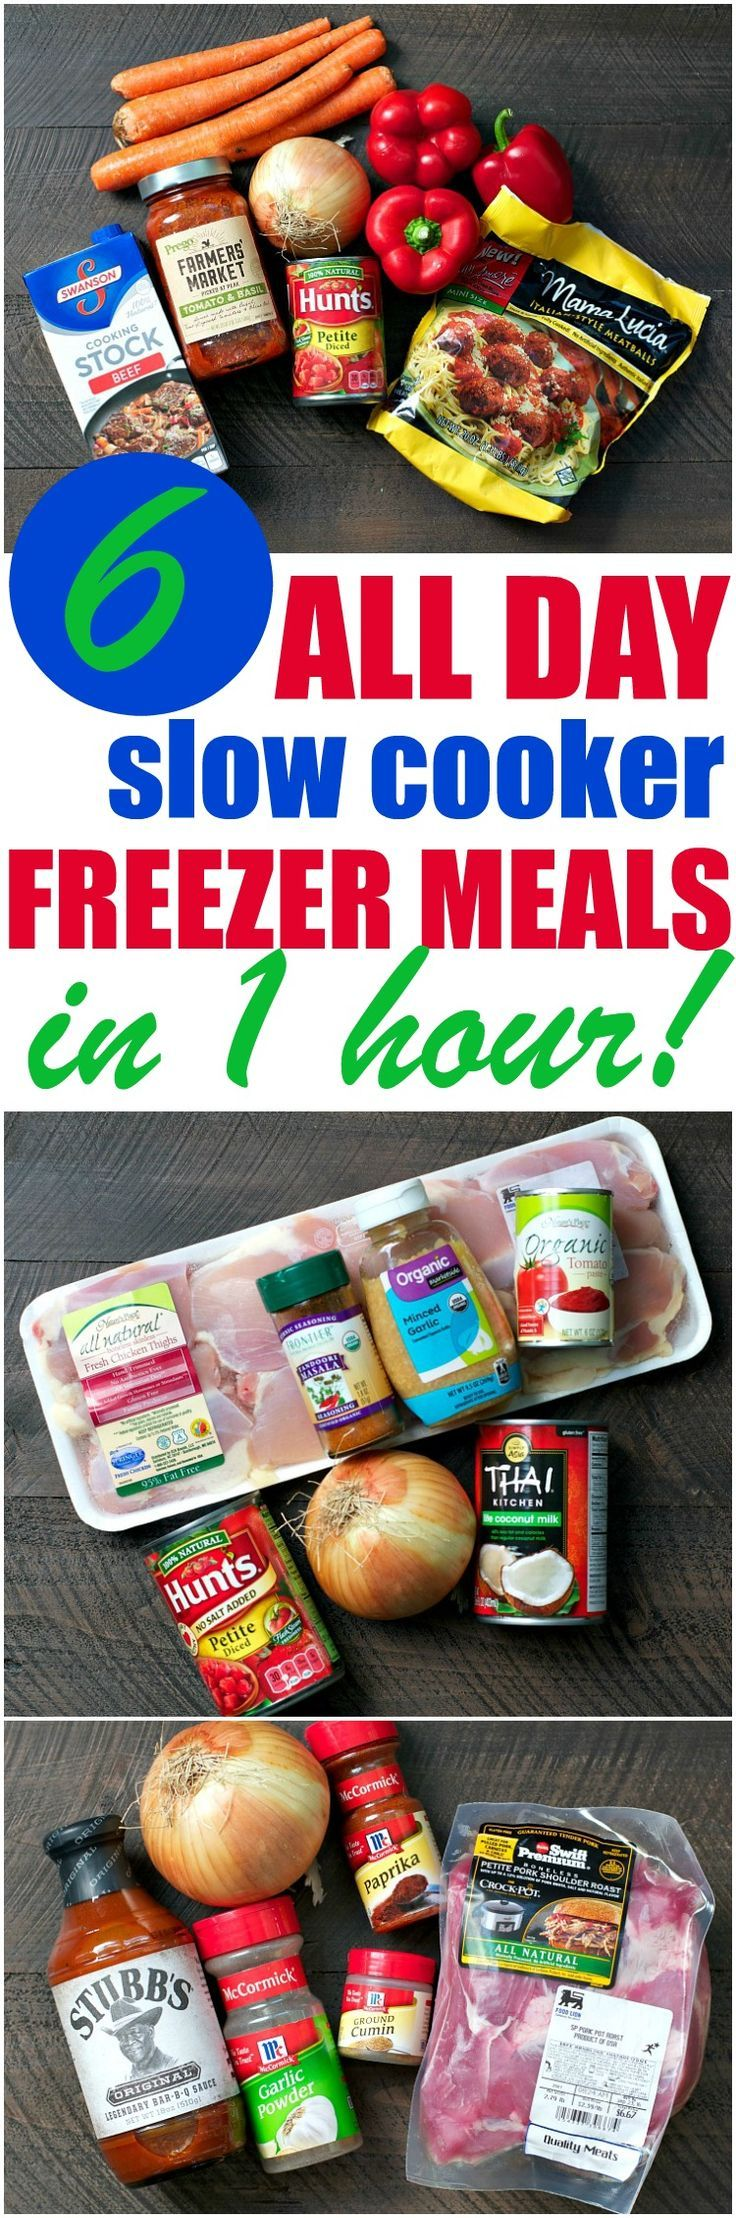 Stock your kitchen with 6 All Day Slow Cooker Freezer Meals in just 1 hour!